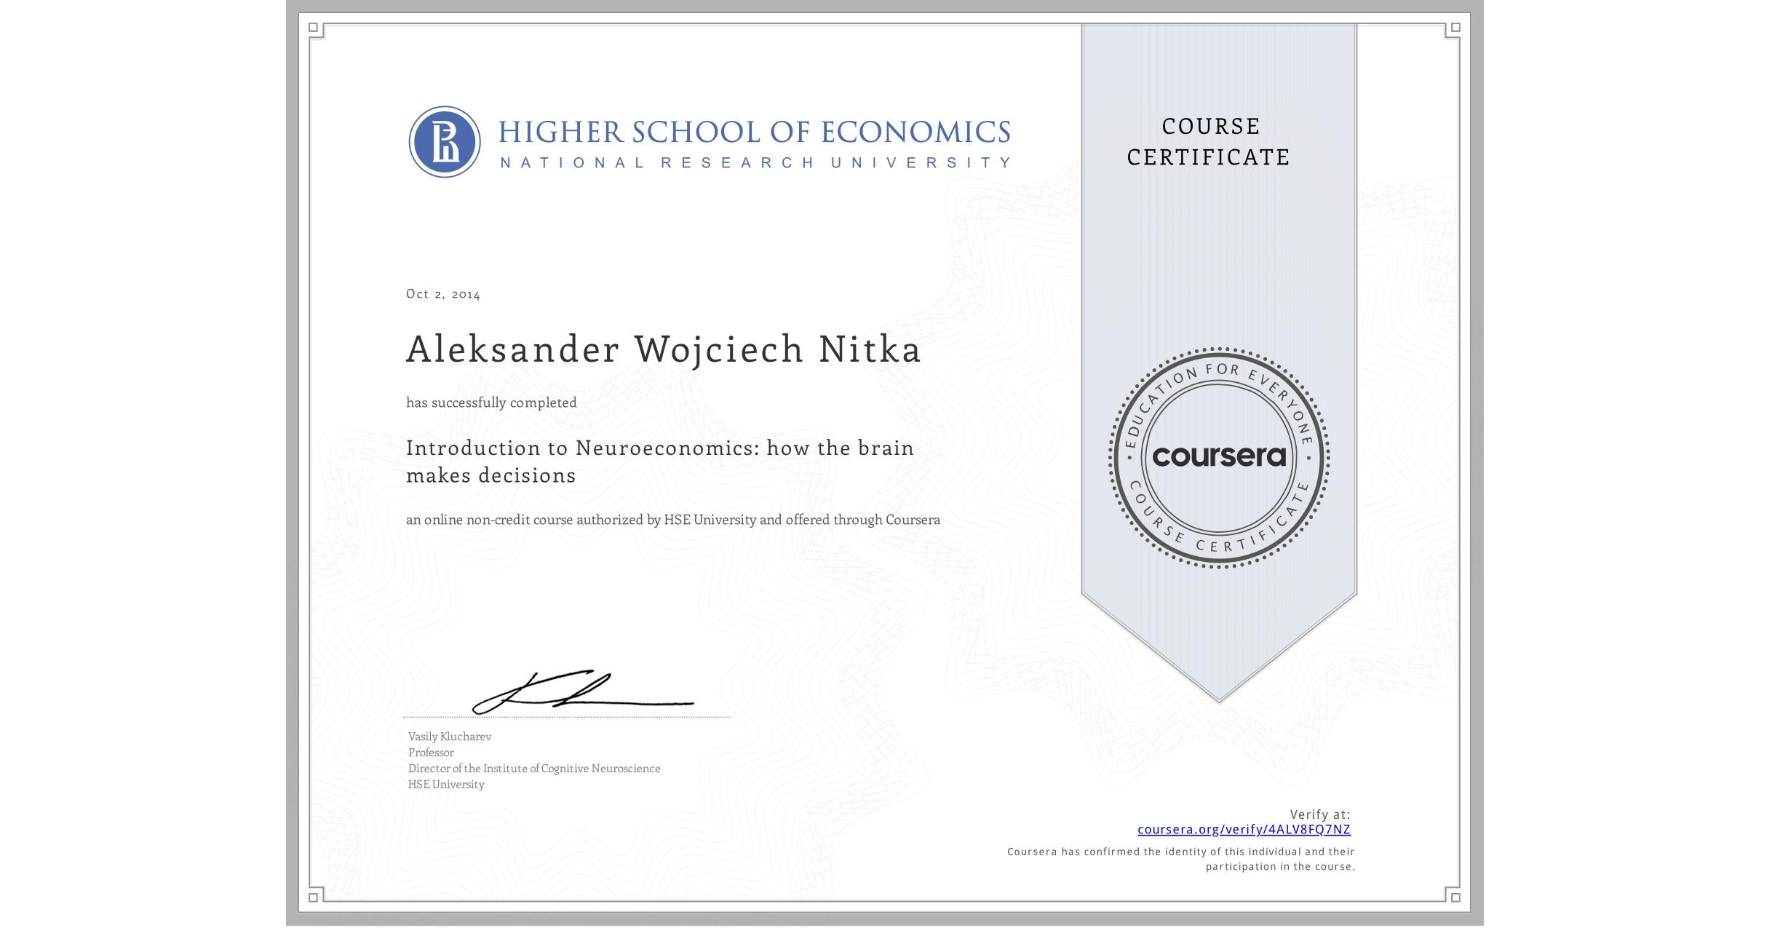 View certificate for Aleksander Wojciech Nitka, Introduction to Neuroeconomics: how the brain makes decisions, an online non-credit course authorized by HSE University and offered through Coursera